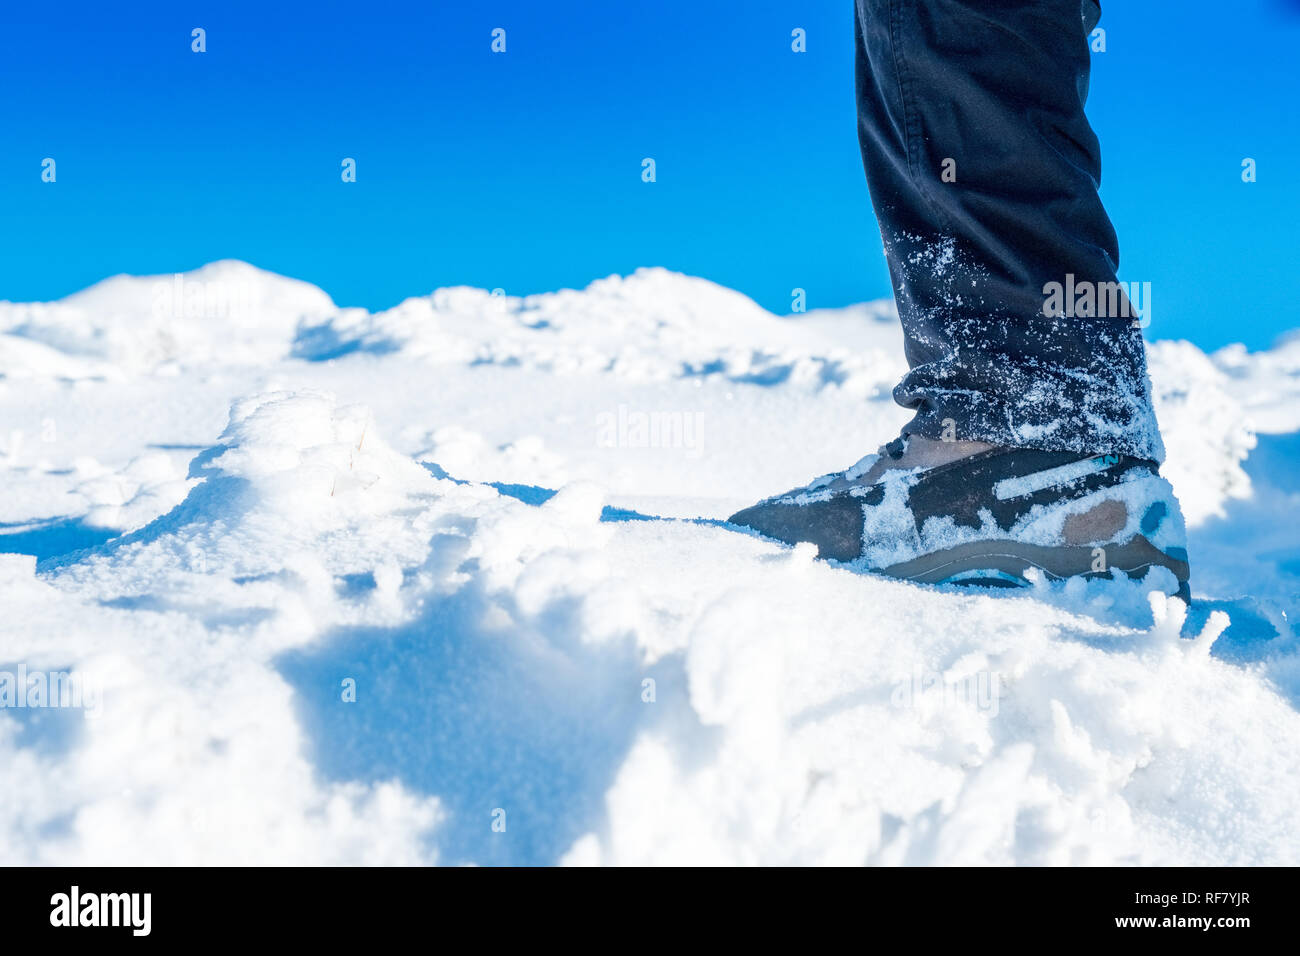 Close up shot of  (female) winter walker's boot in snow on the approach to Kinder Scout in the Peak District, UK - Stock Image